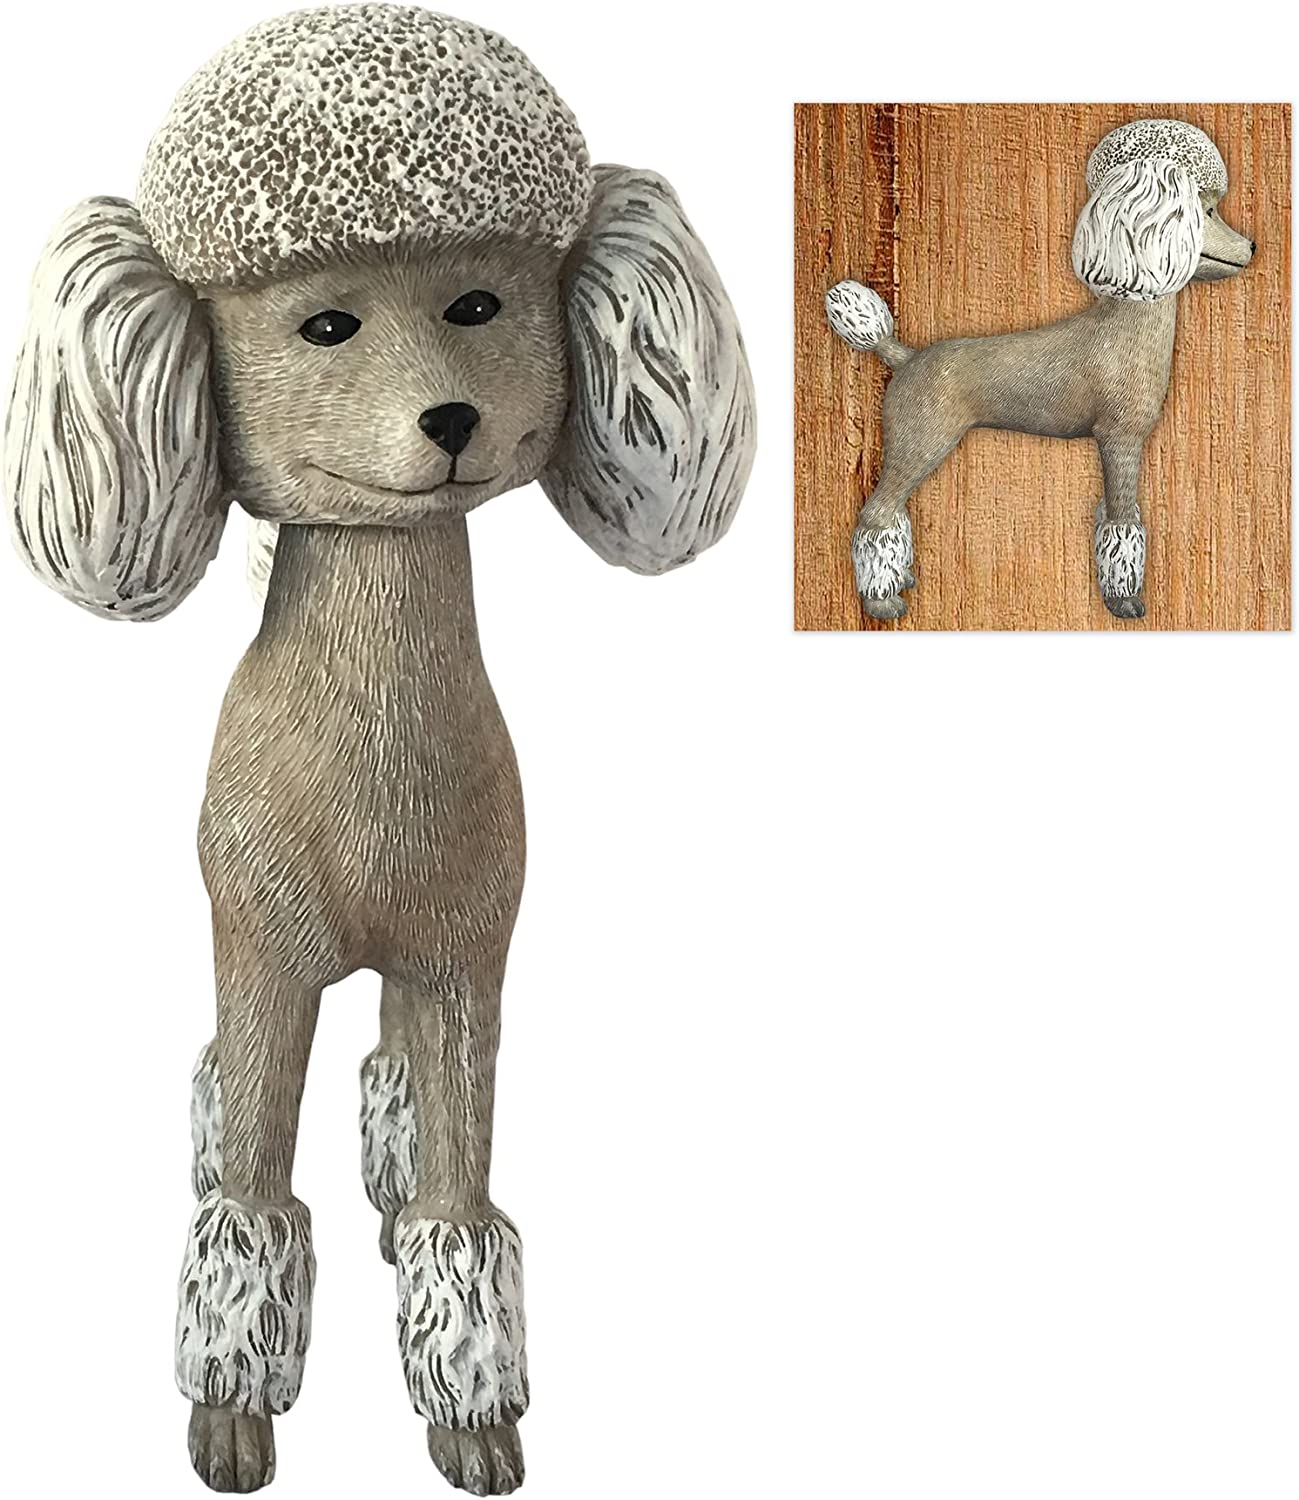 Off the Wall Toys Action Figures Bobble Head Adorable White Poodle Collectible Bobblehead Figure Home Decor Statue Figurine